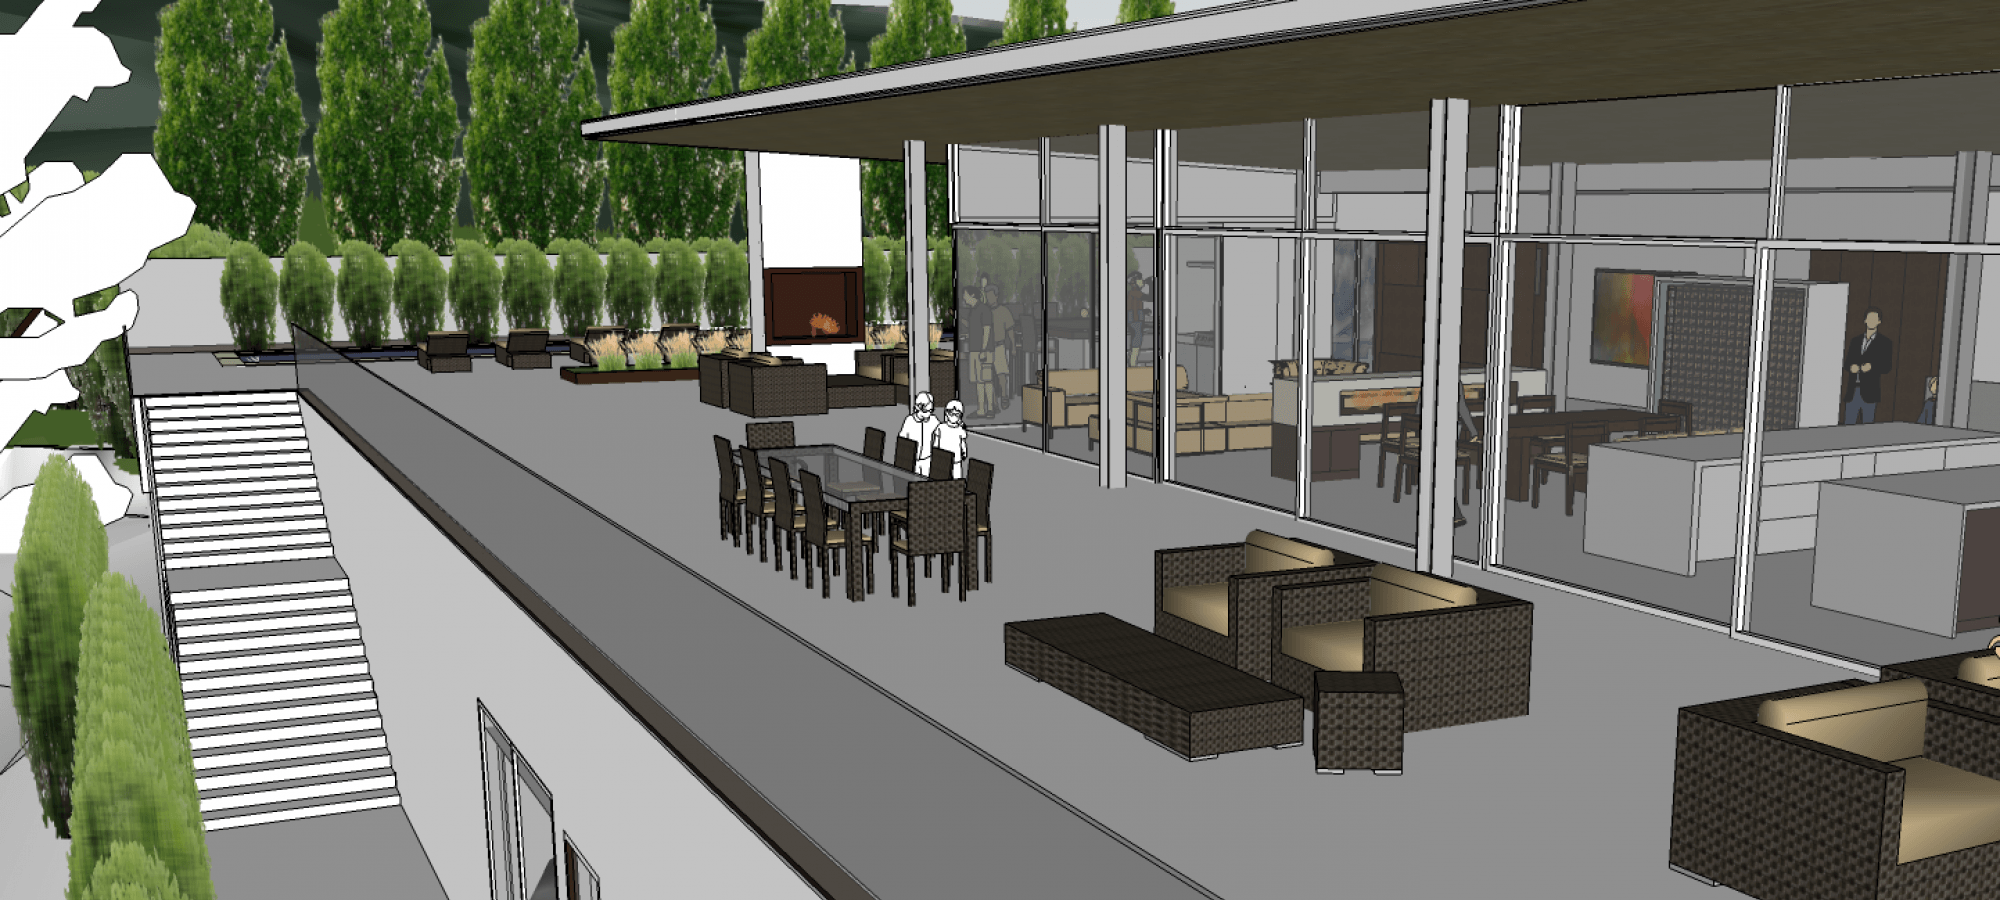 cropped-3d-model-sketchup-north.png